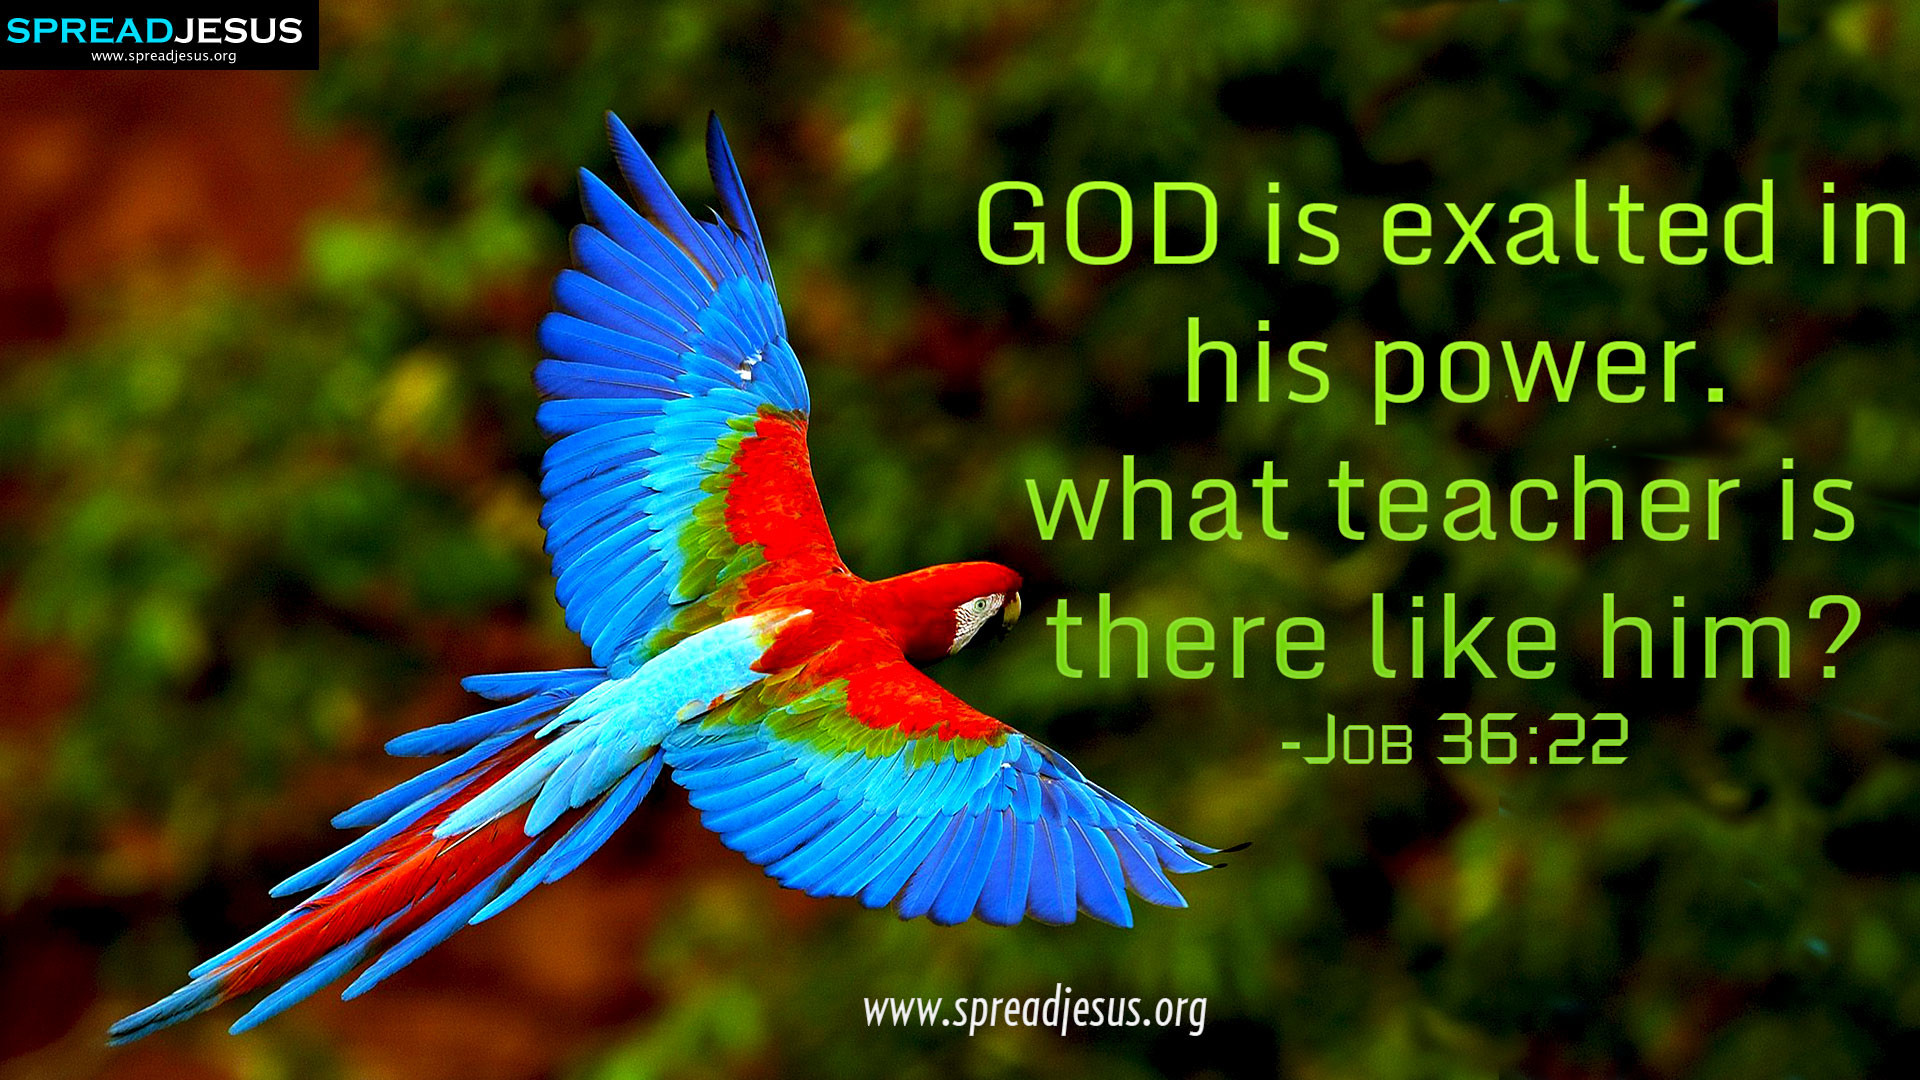 CHRISTIAN HD WALLPAPERS: HOLY BIBLE QUOTES : Job 36:22-GOD is exalted